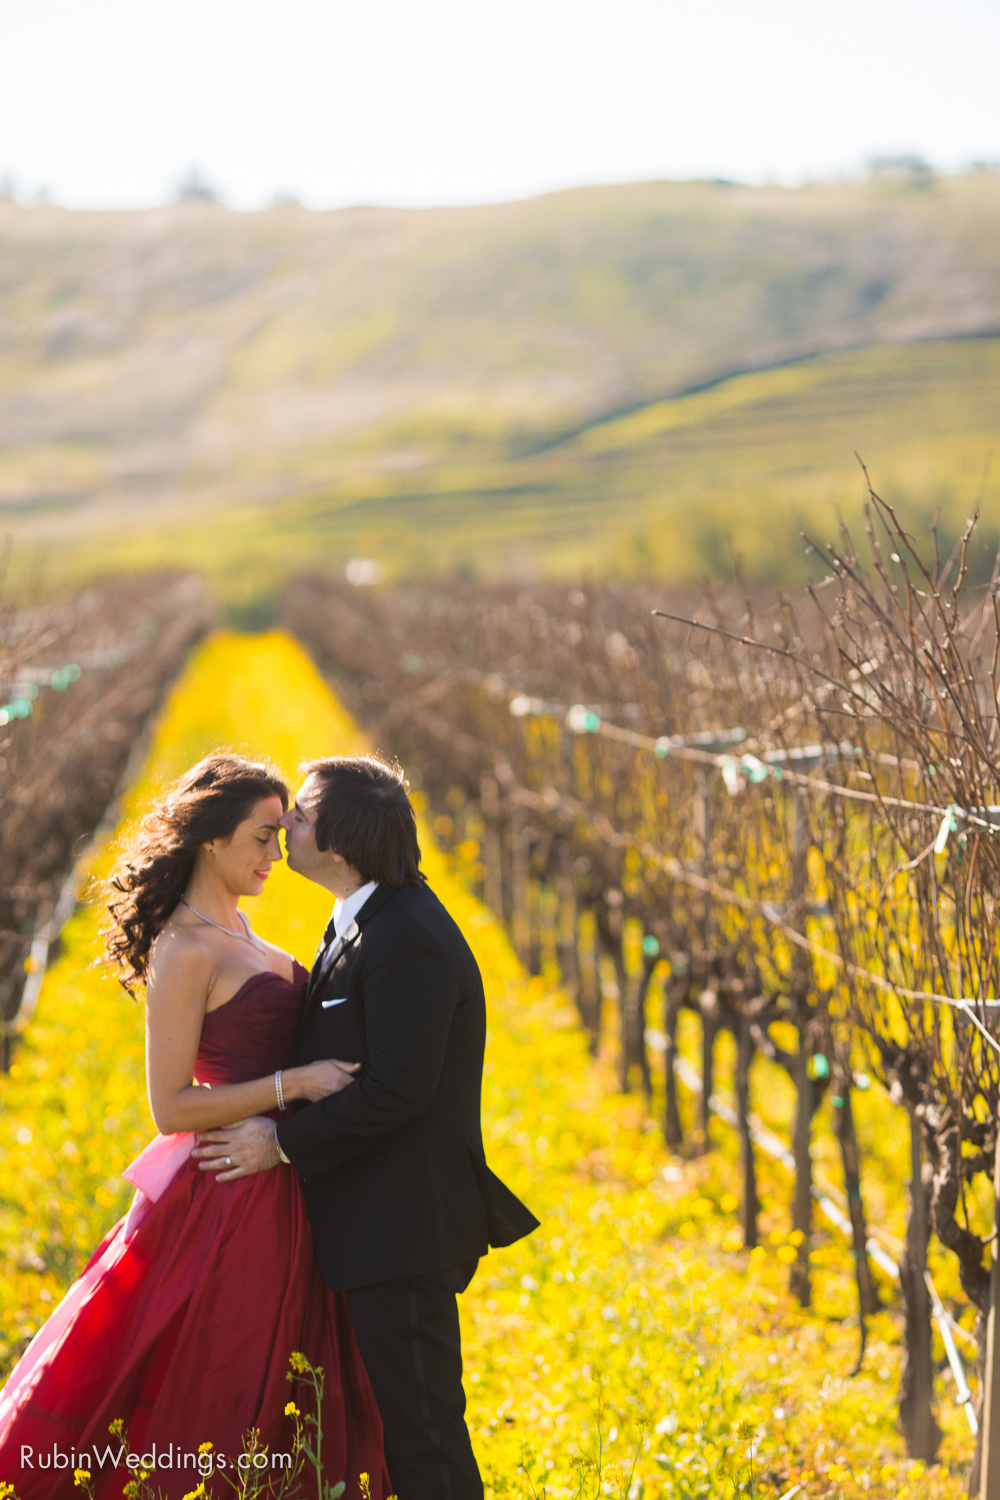 Destination Elopement Wedding in Napa By Alexander Rubin Photography_0006